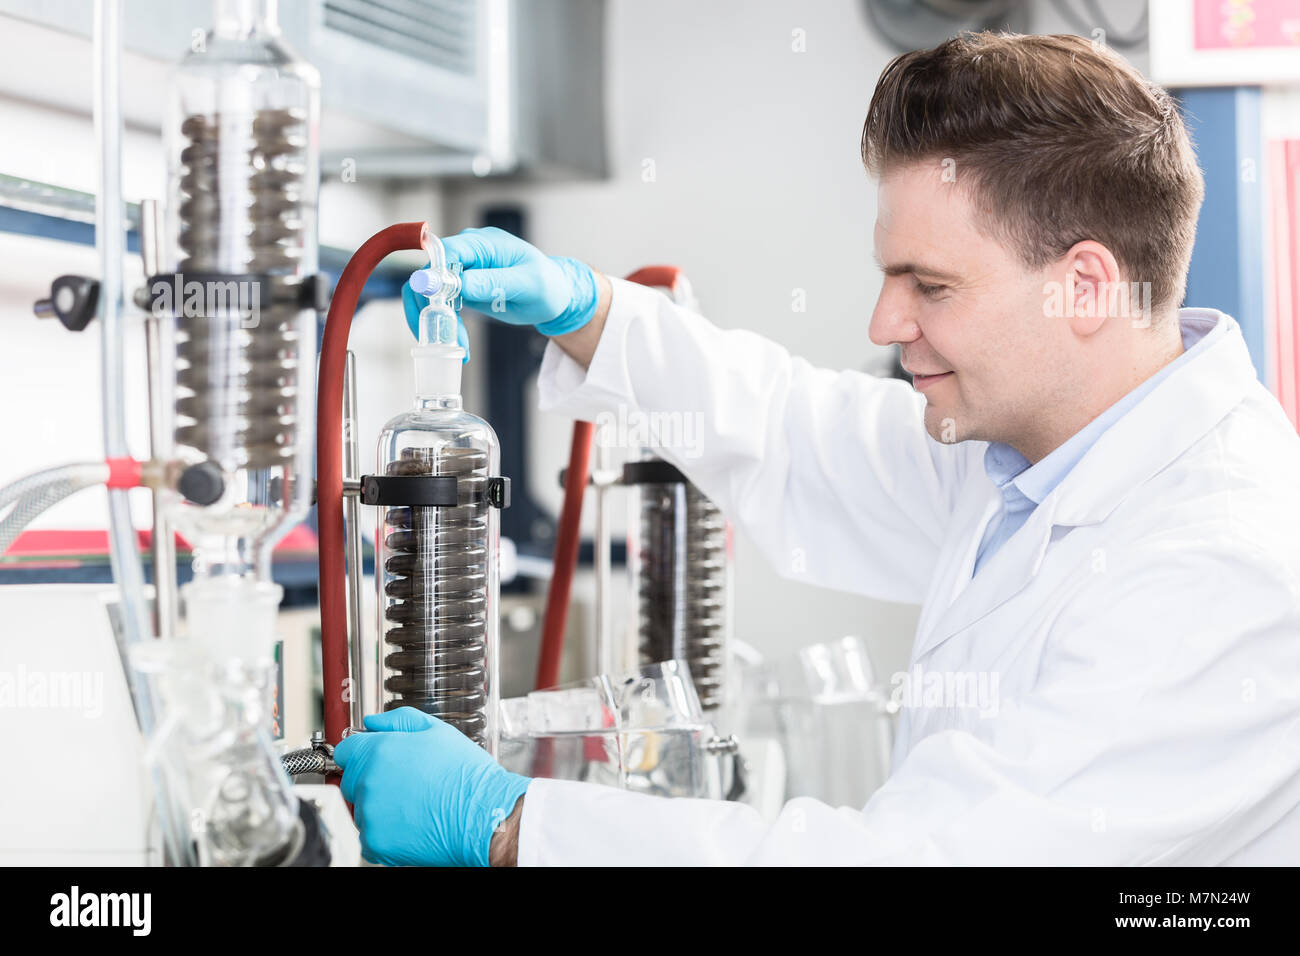 Scientist in research lab analyzing samples - Stock Image